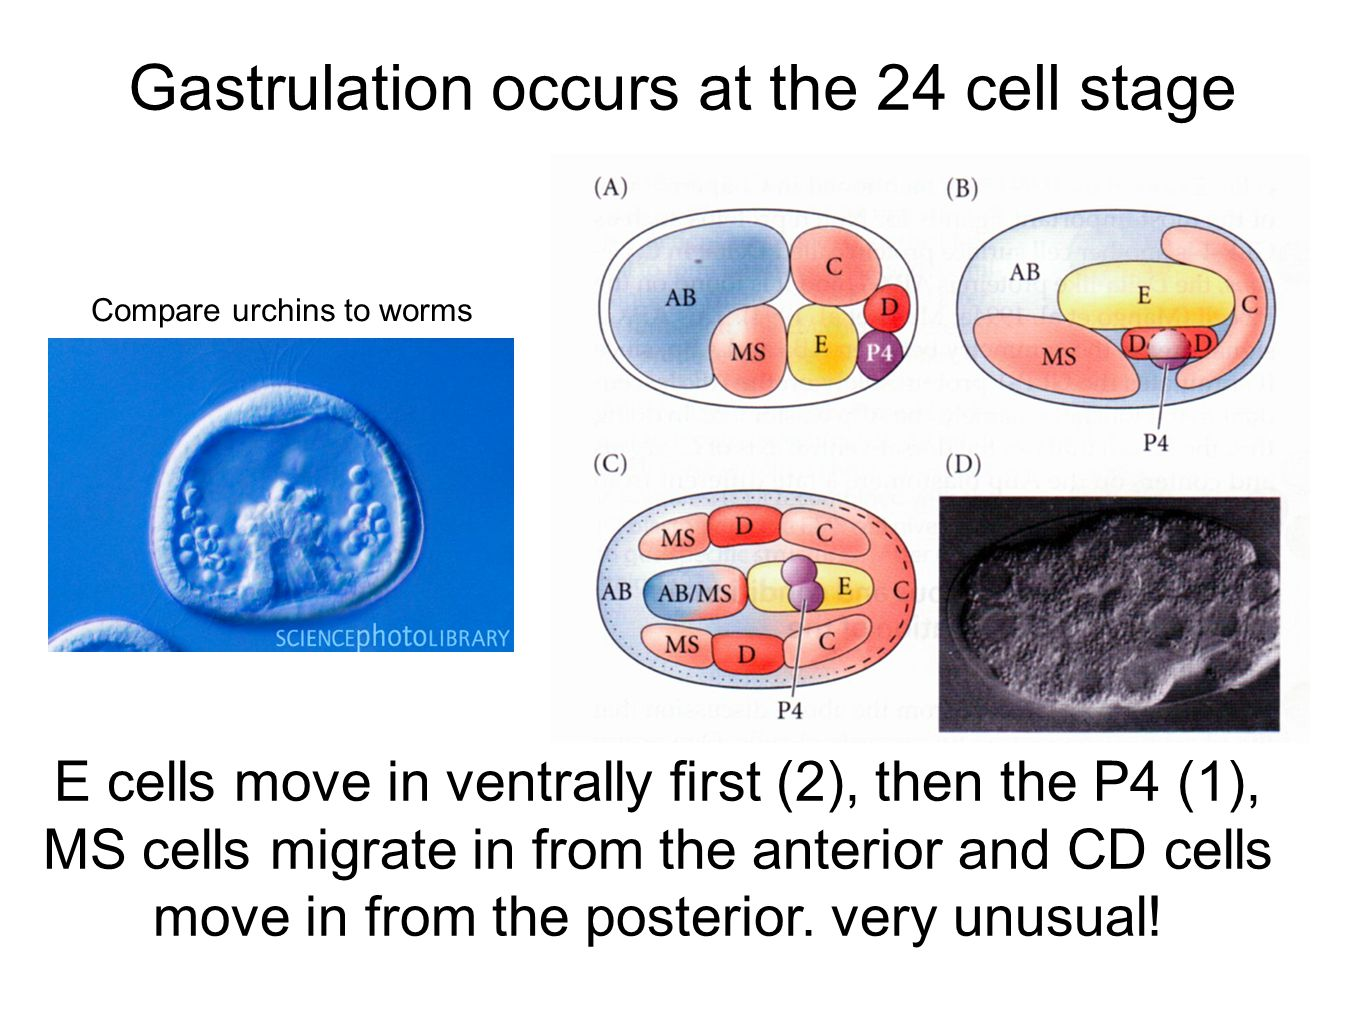 Gastrulation occurs at the 24 cell stage